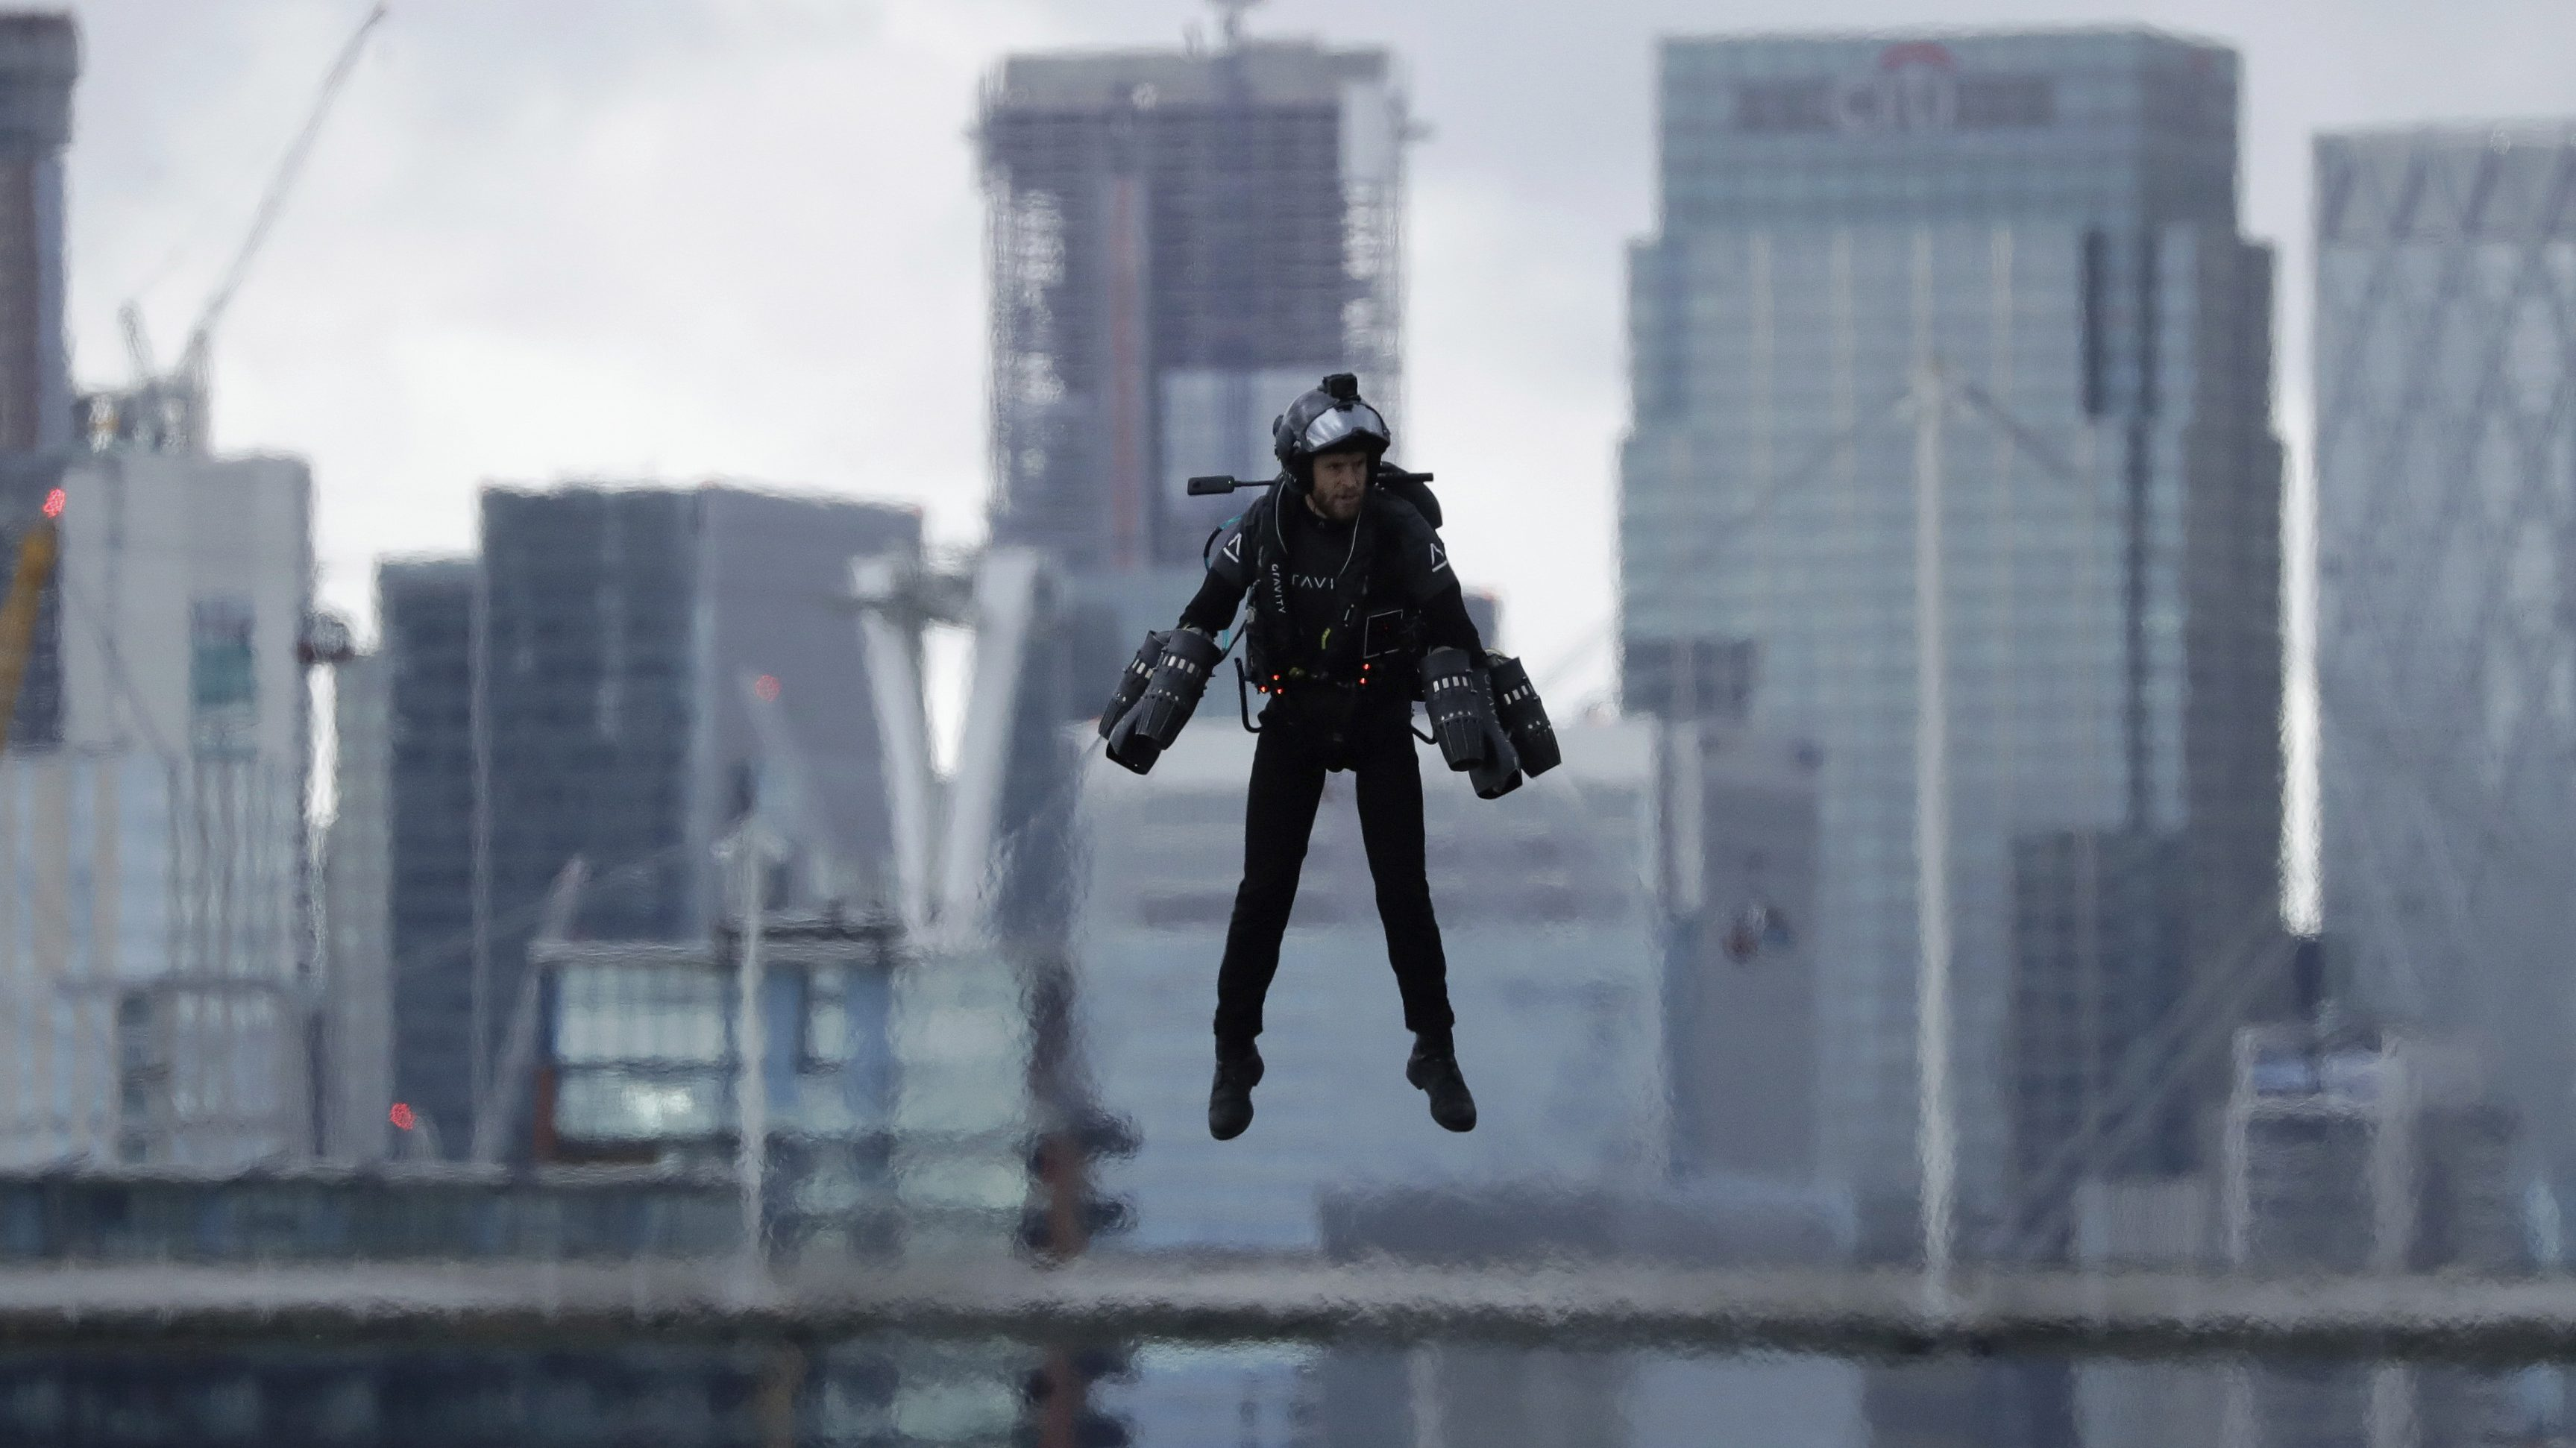 a man flying in a jetpack